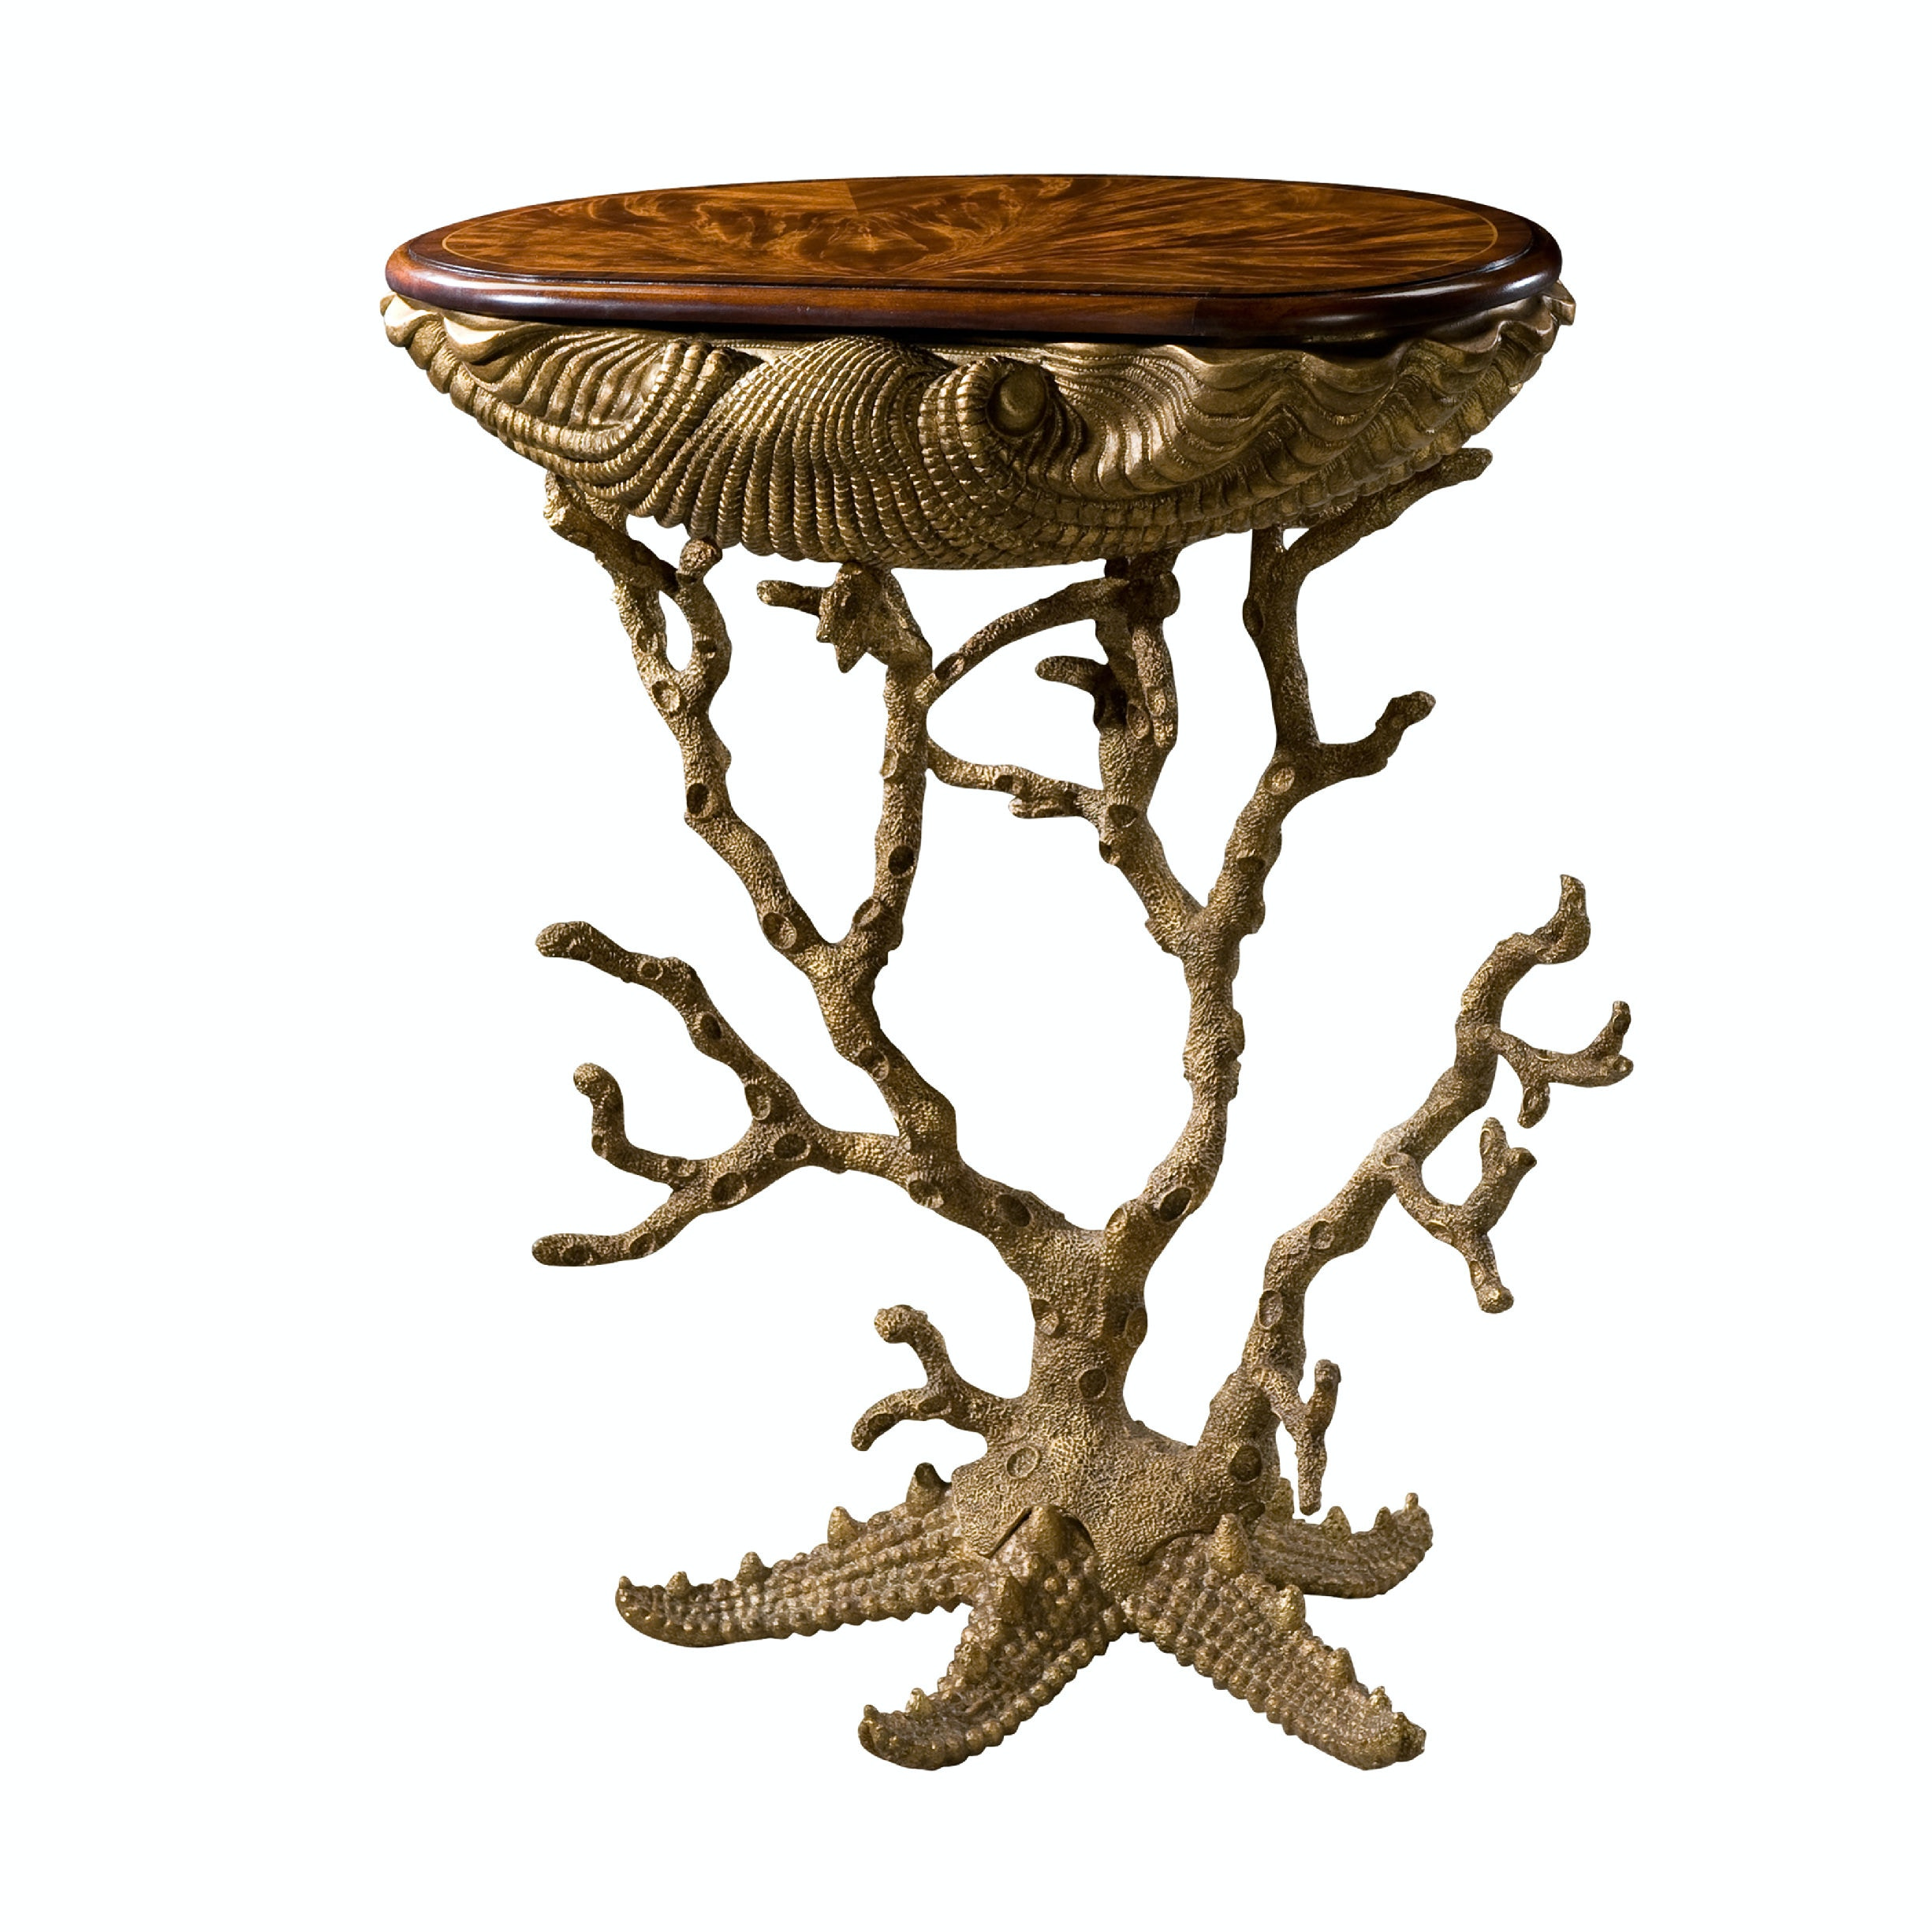 Amazing Theodore Alexander Gilt Grotto Table TH5325001 From Walter E. Smithe  Furniture + Design